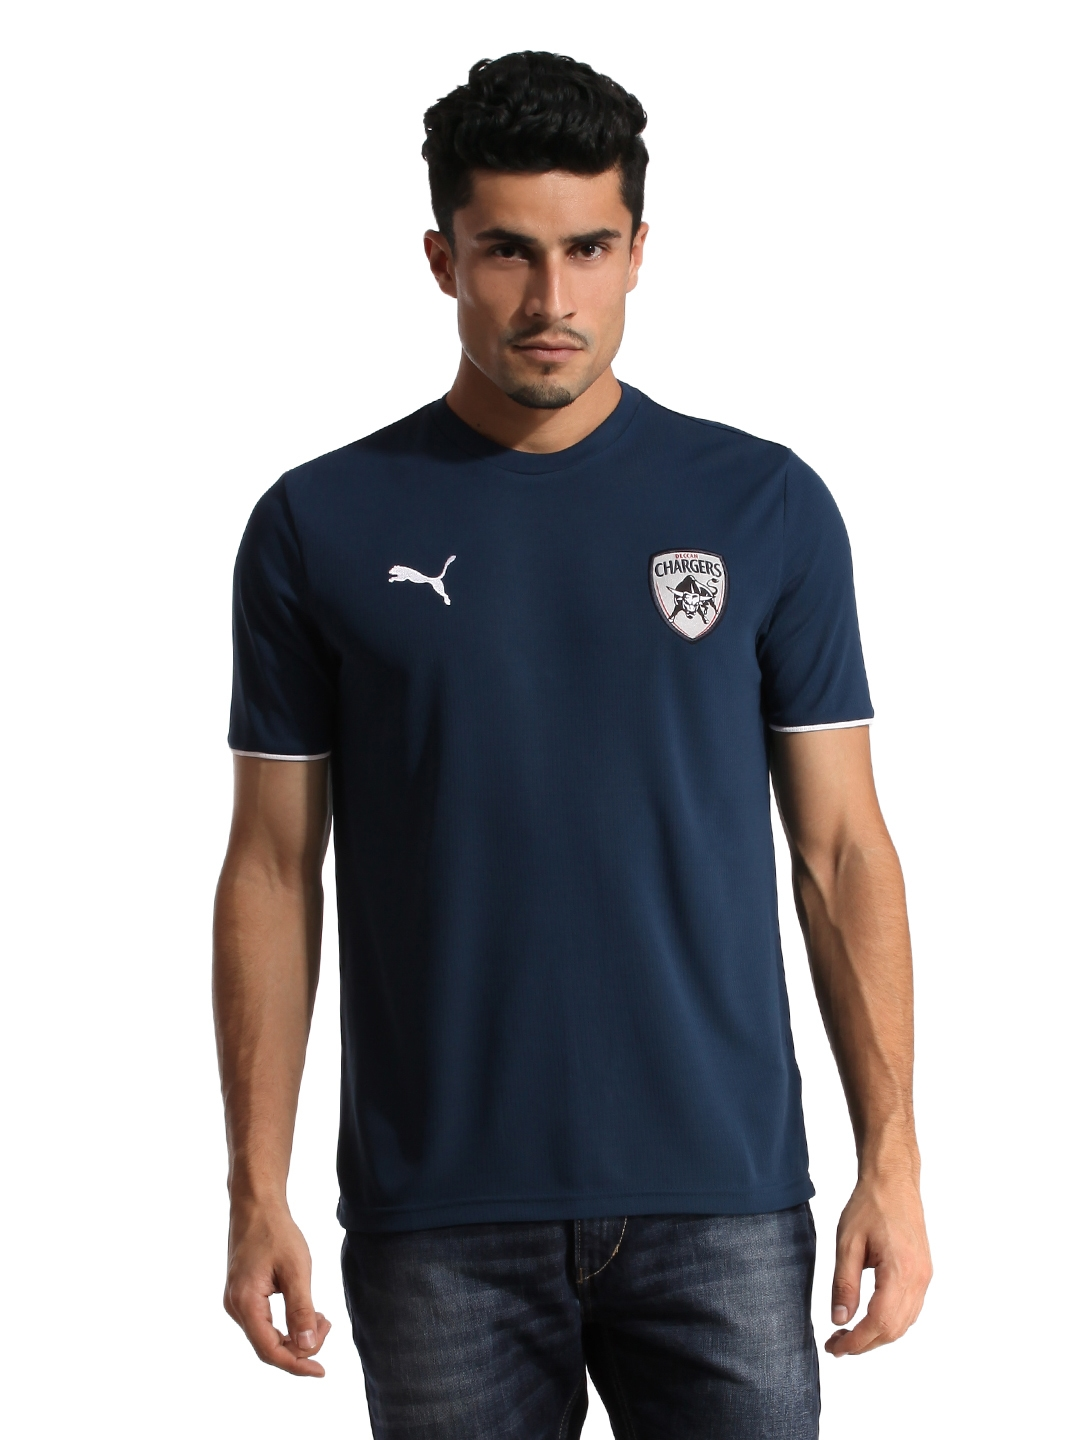 Buy puma deccan chargers men navy blue lookalike jersey tshirts rs 500 biocorpaavc Image collections